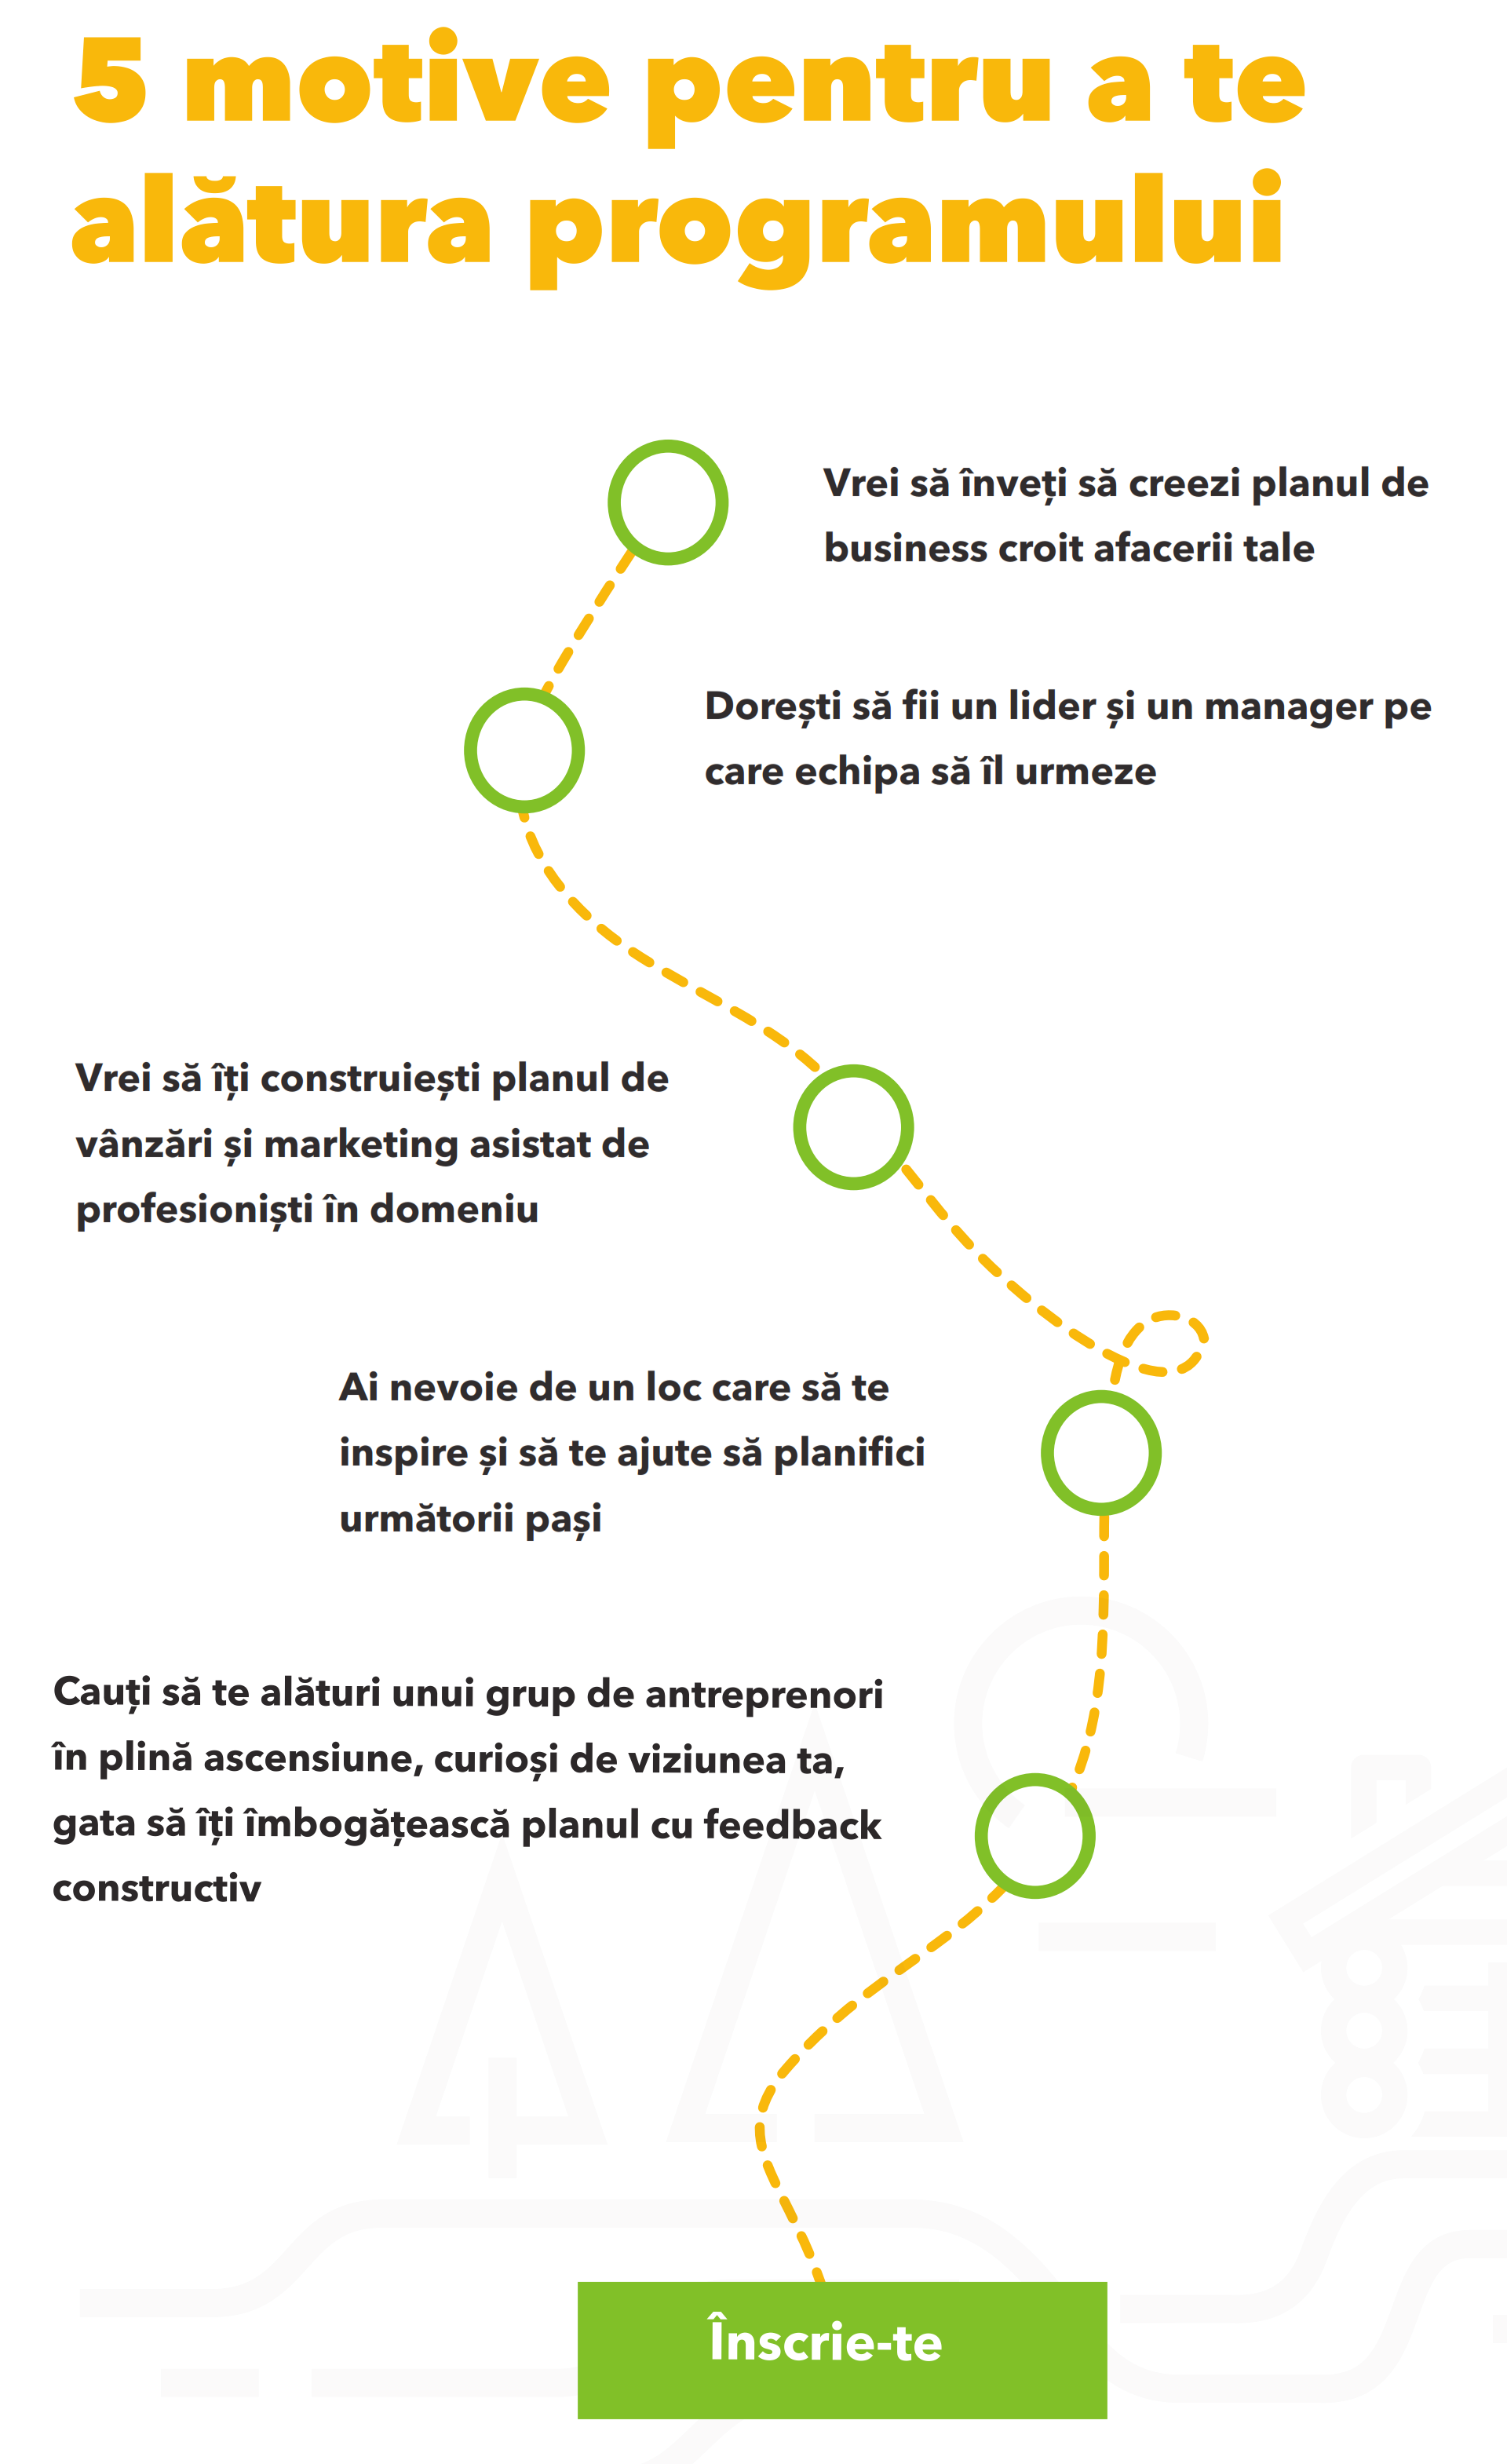 titirez-bootcamp_prezentare-program-2016_006